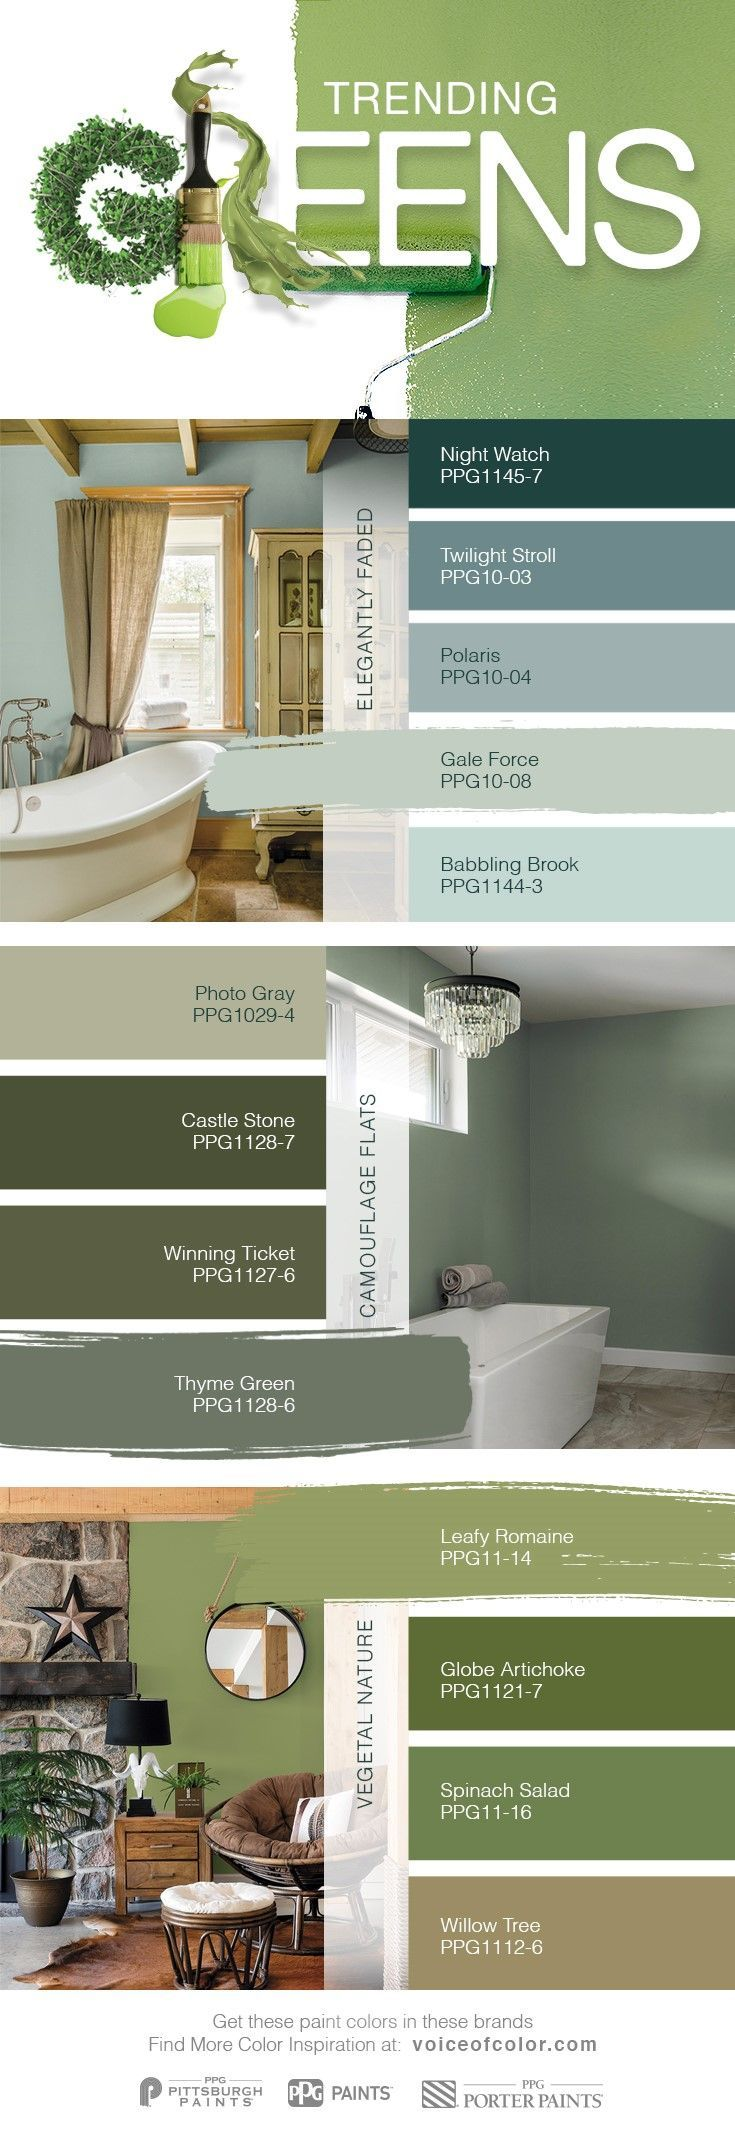 Paint colors website - Trending Green Paint Colors For 2017 The Natural World Is Once Again Becoming A Dominant